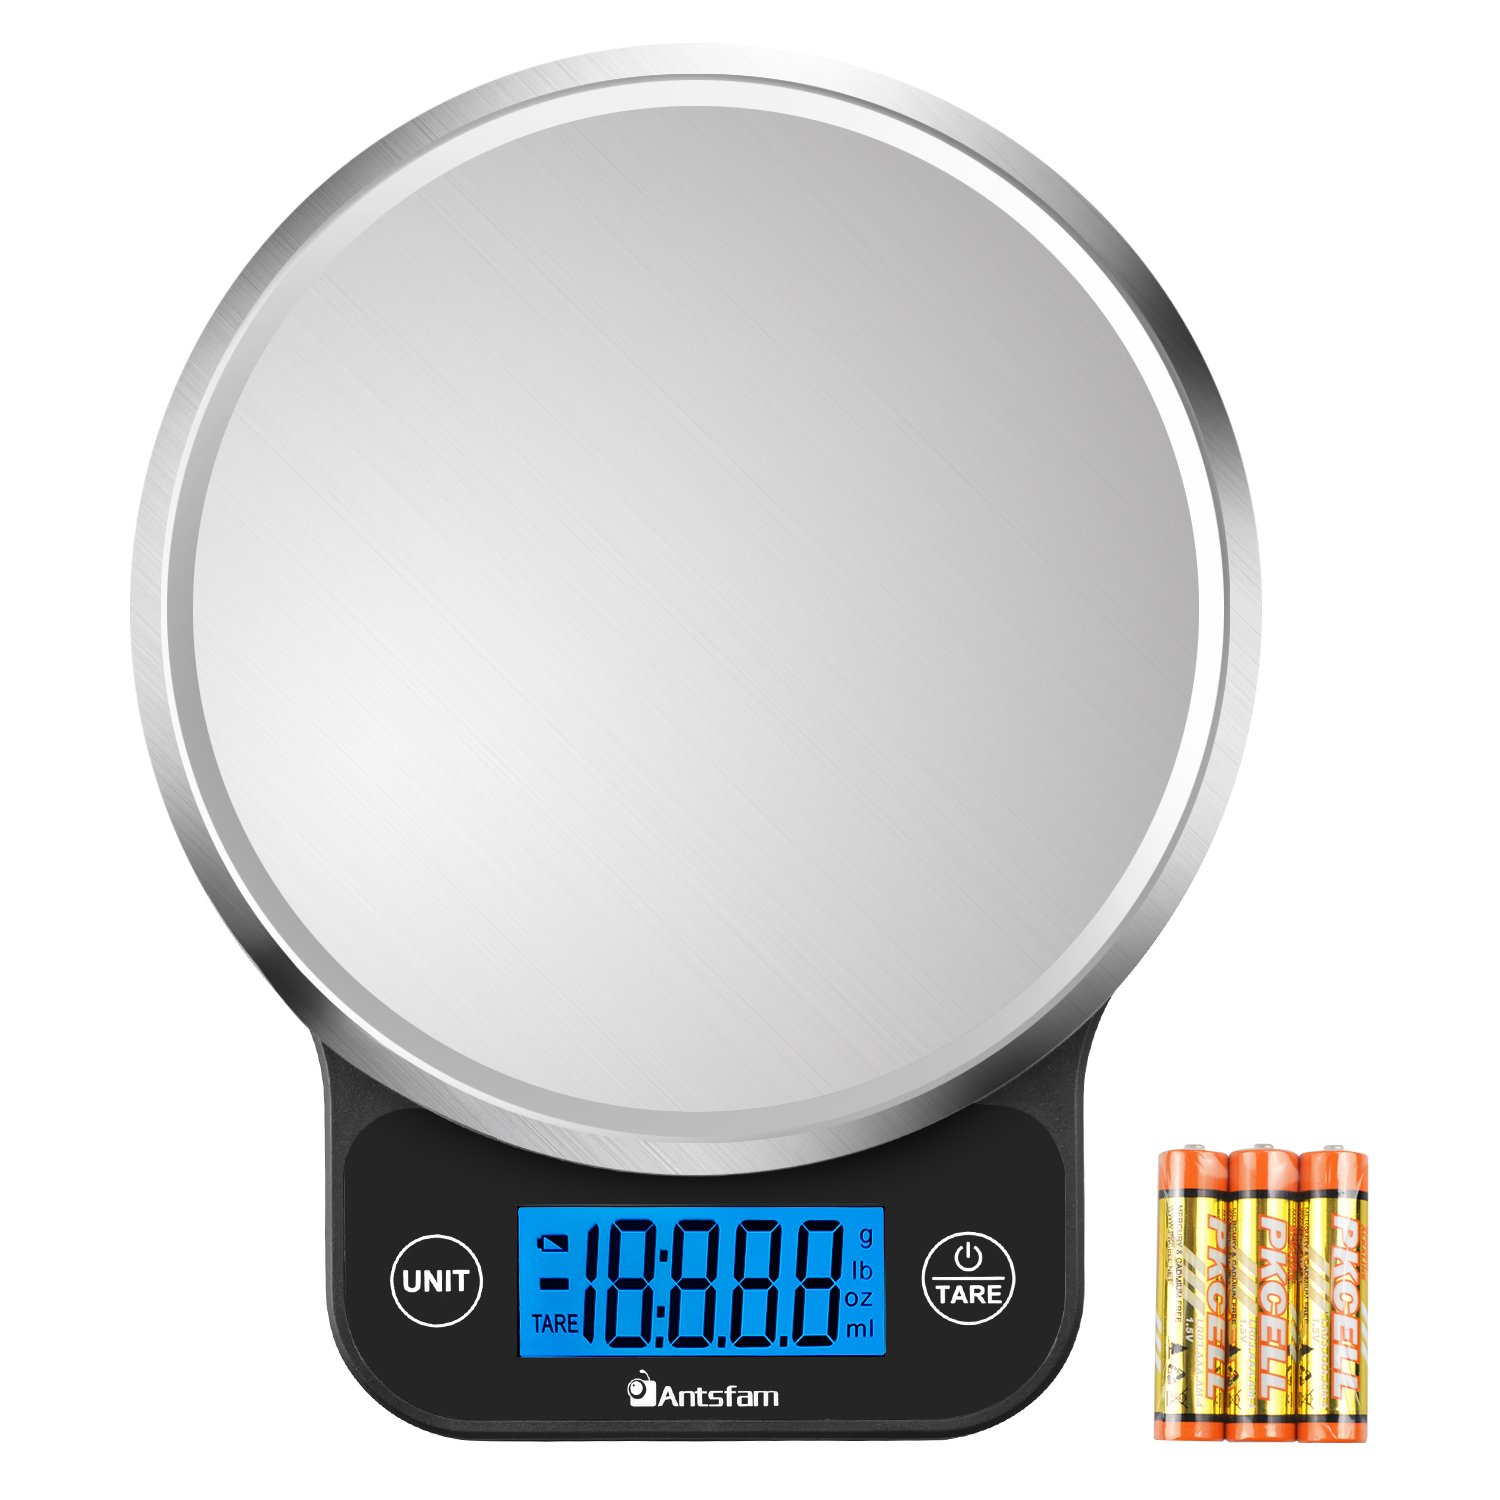 Digital Kitchen Food Scale Electronic Weight Scale for Dieting with Upgraded Blue Backlit Display-Batteries Included